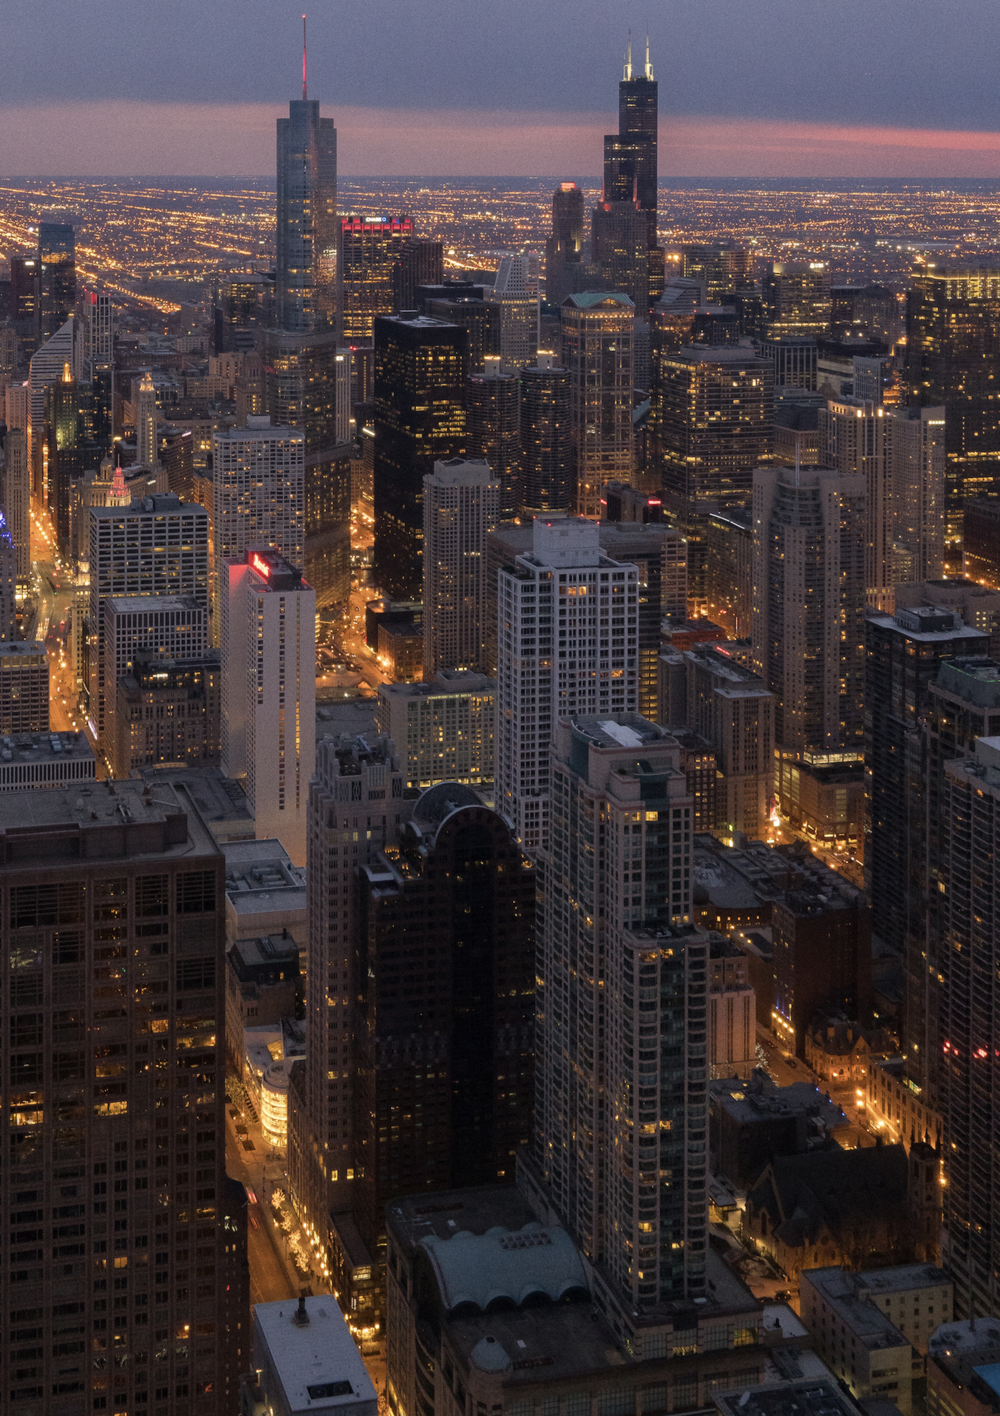 THE WINDY CITY // IMAGE BY FRANKIEBOYPHOTOGRAPHY.COM